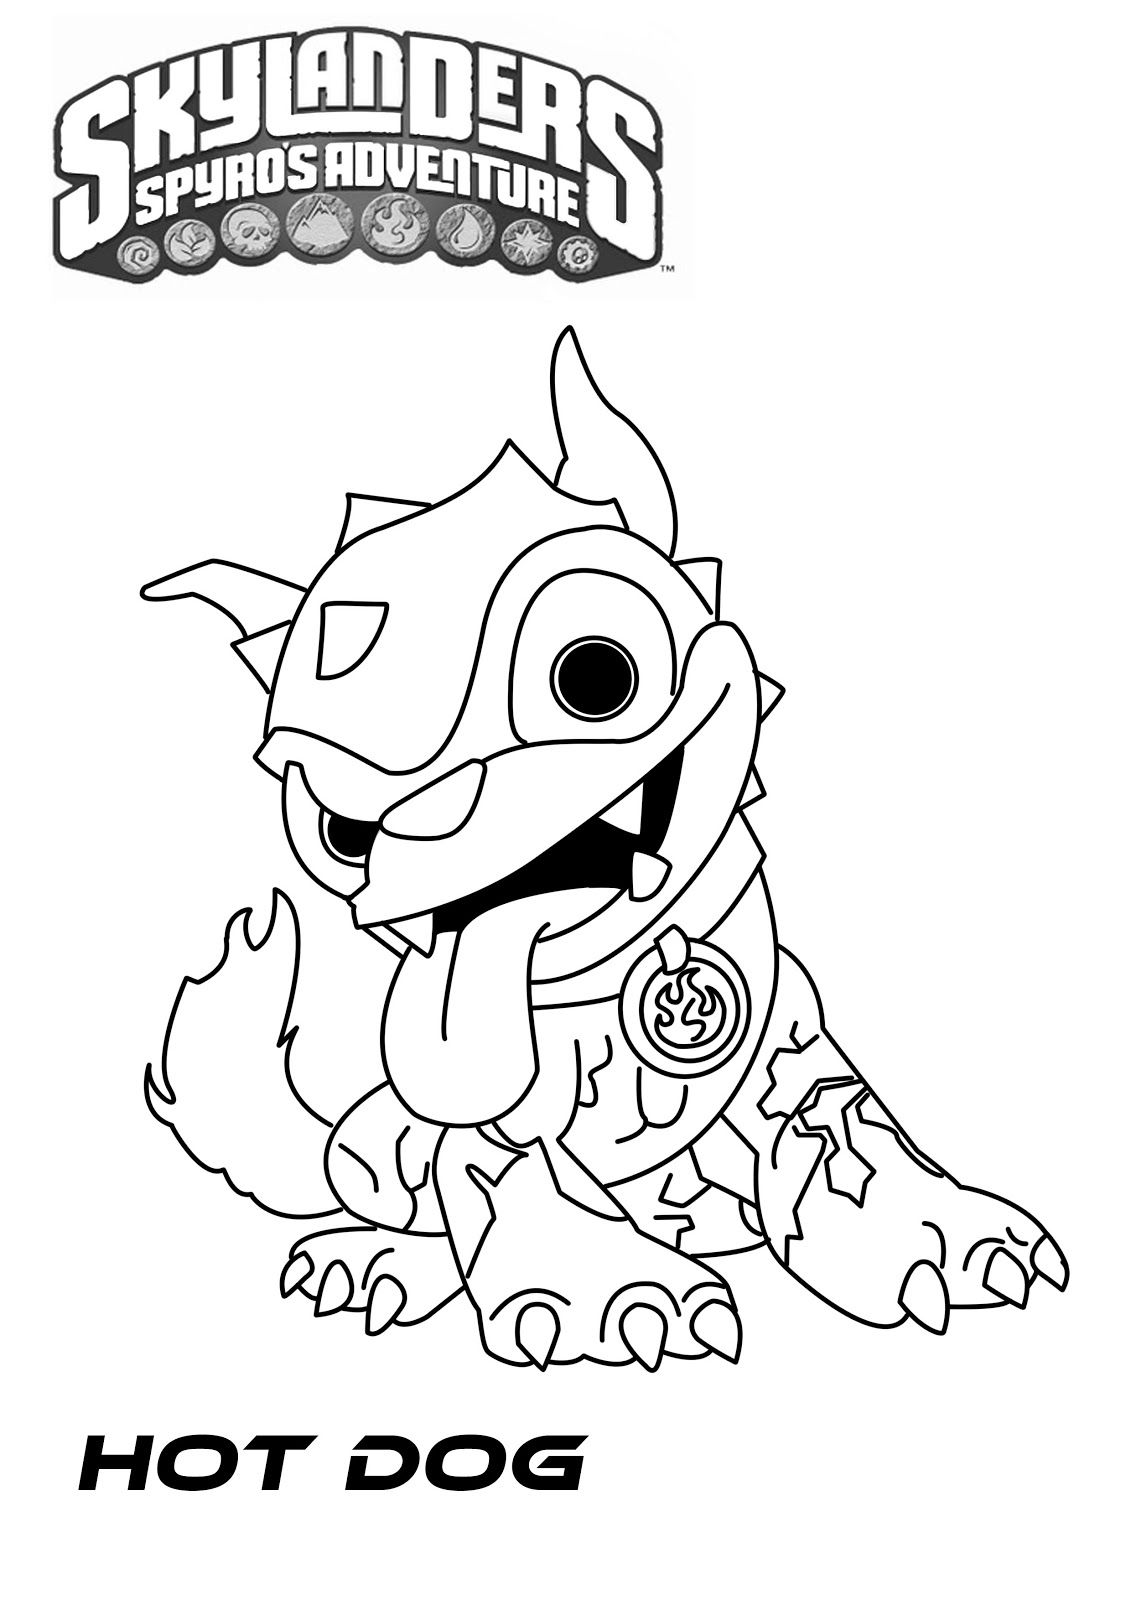 Free coloring pages for skylanders - Skylander Hot Dog Coloring Pages Jpg 1131 1600